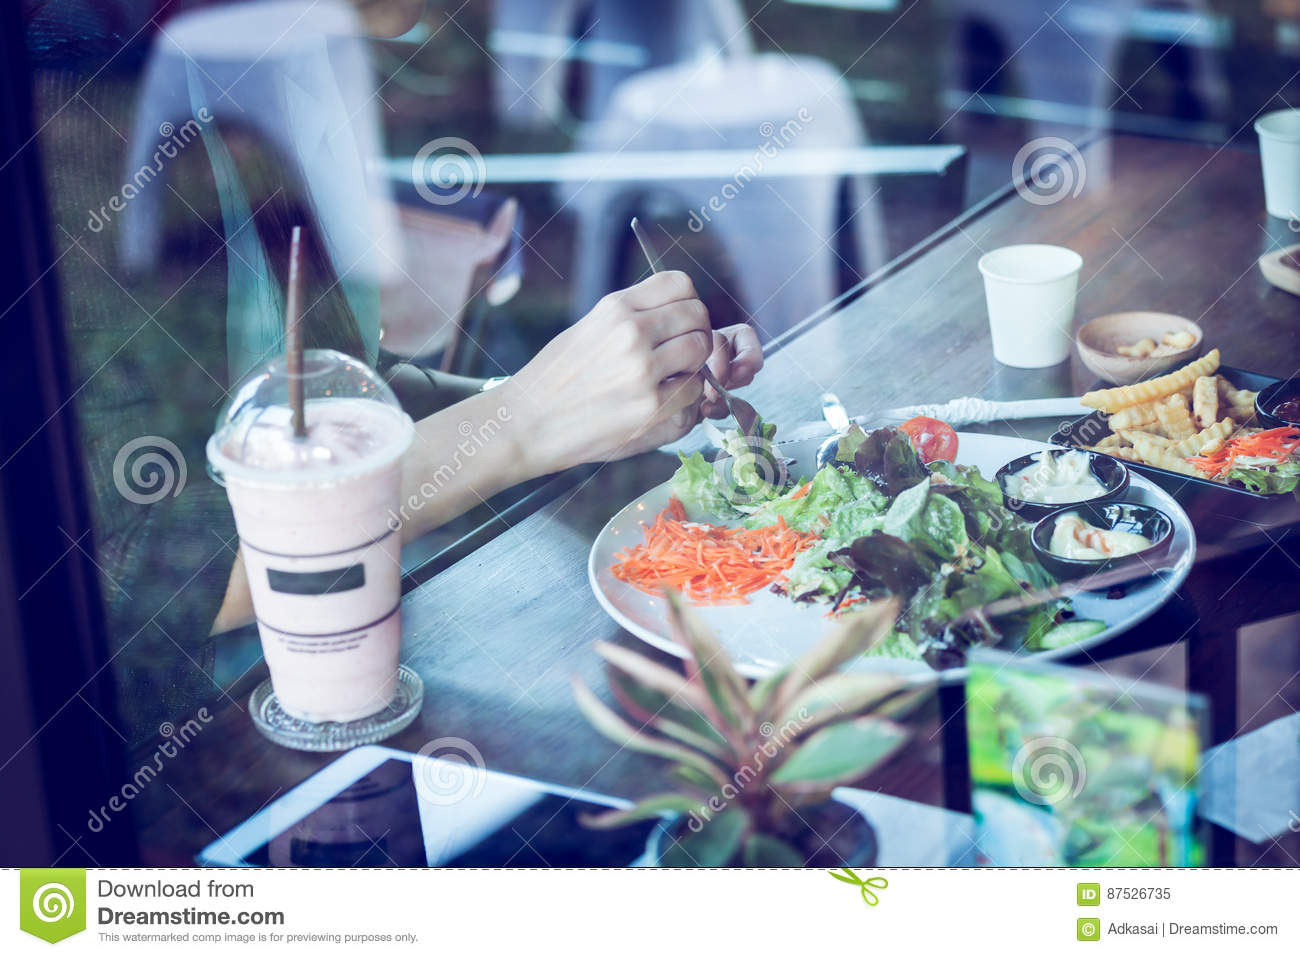 Young woman eating salad and beverage in cafe